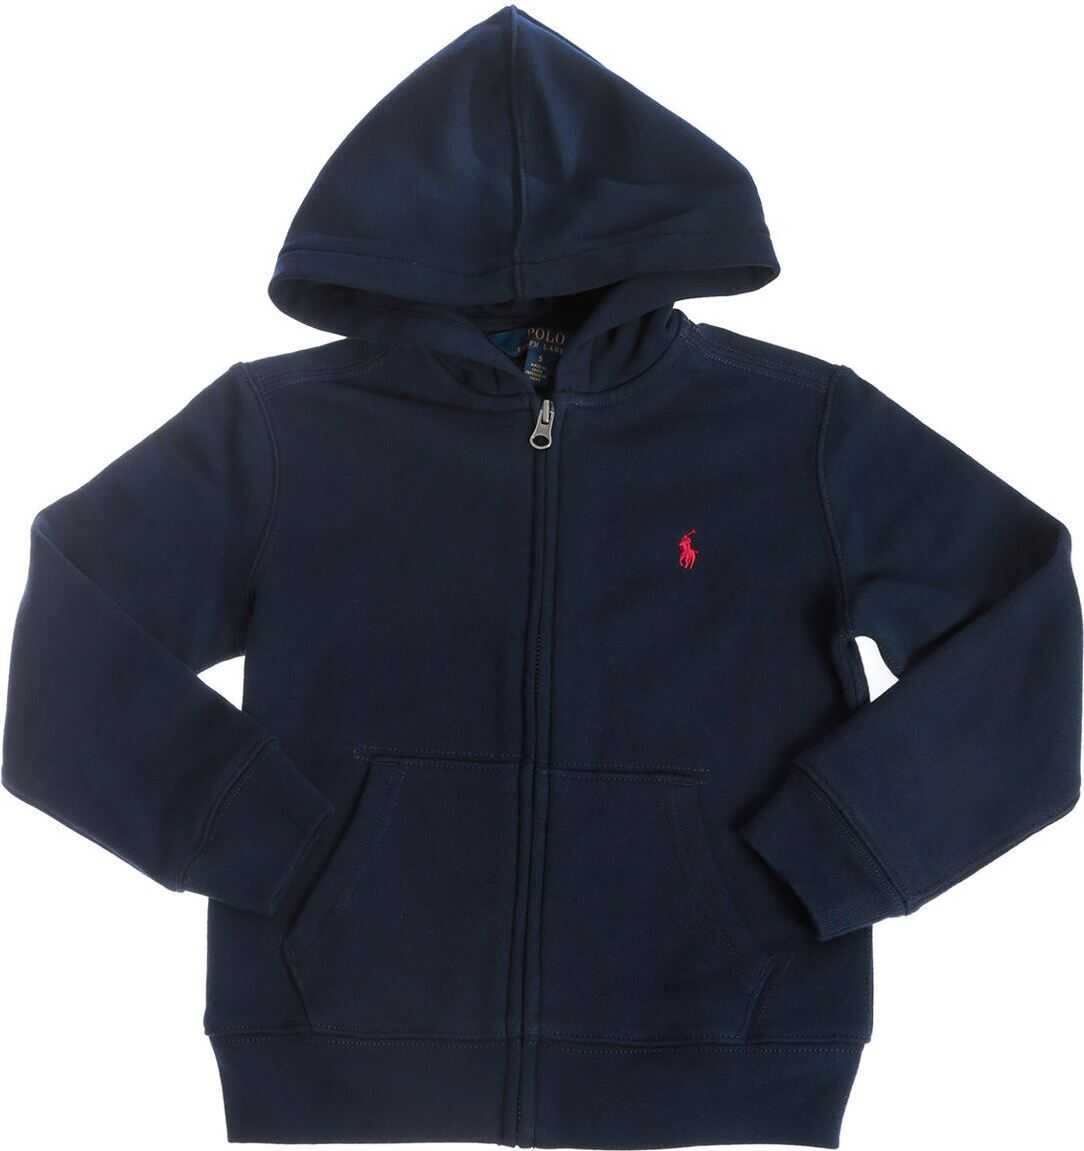 Hoodie In Navy Color